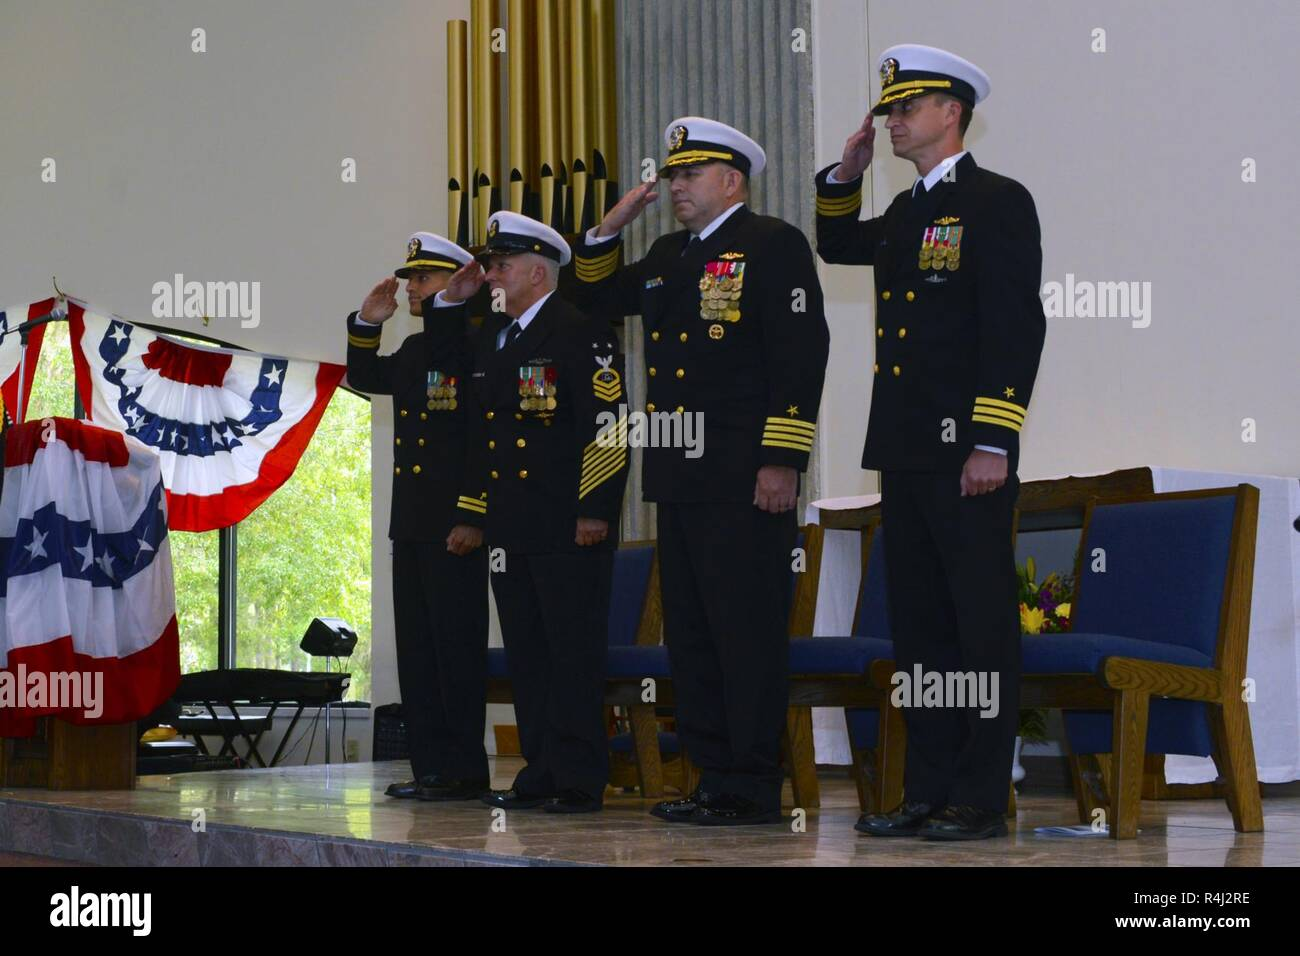 Guests salute during the presentation of colors at Naval Submarine Base Kings Bay, Ga., during a retirement ceremony for Master Chief Culinary Specialist Fernando Colon-Aldecoa. The base is home to five of the Ohio-class ballistic-missile submarines that make up the most survivable leg of the nuclear missile triad. - Stock Image